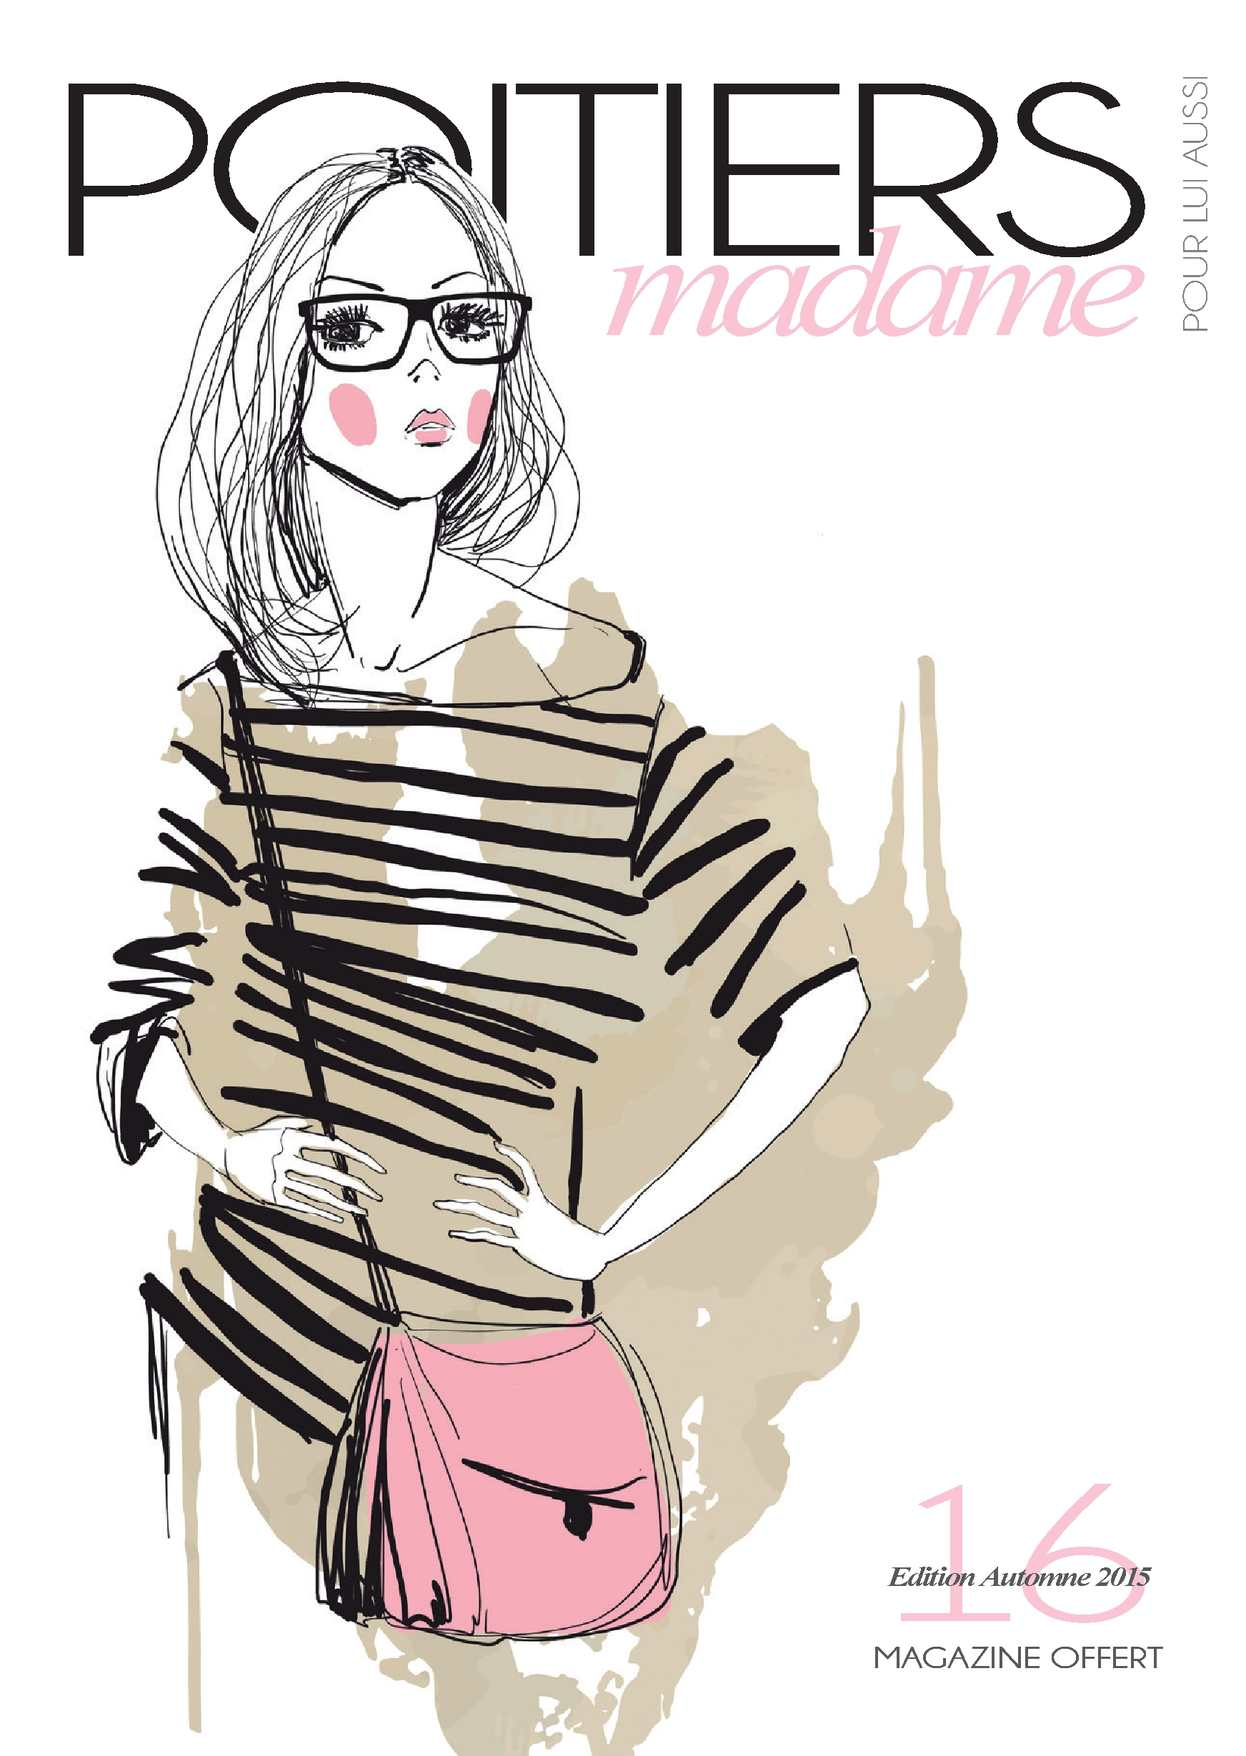 Calam o n 16 poitiers madame automne 2015 for Que choisir poitiers